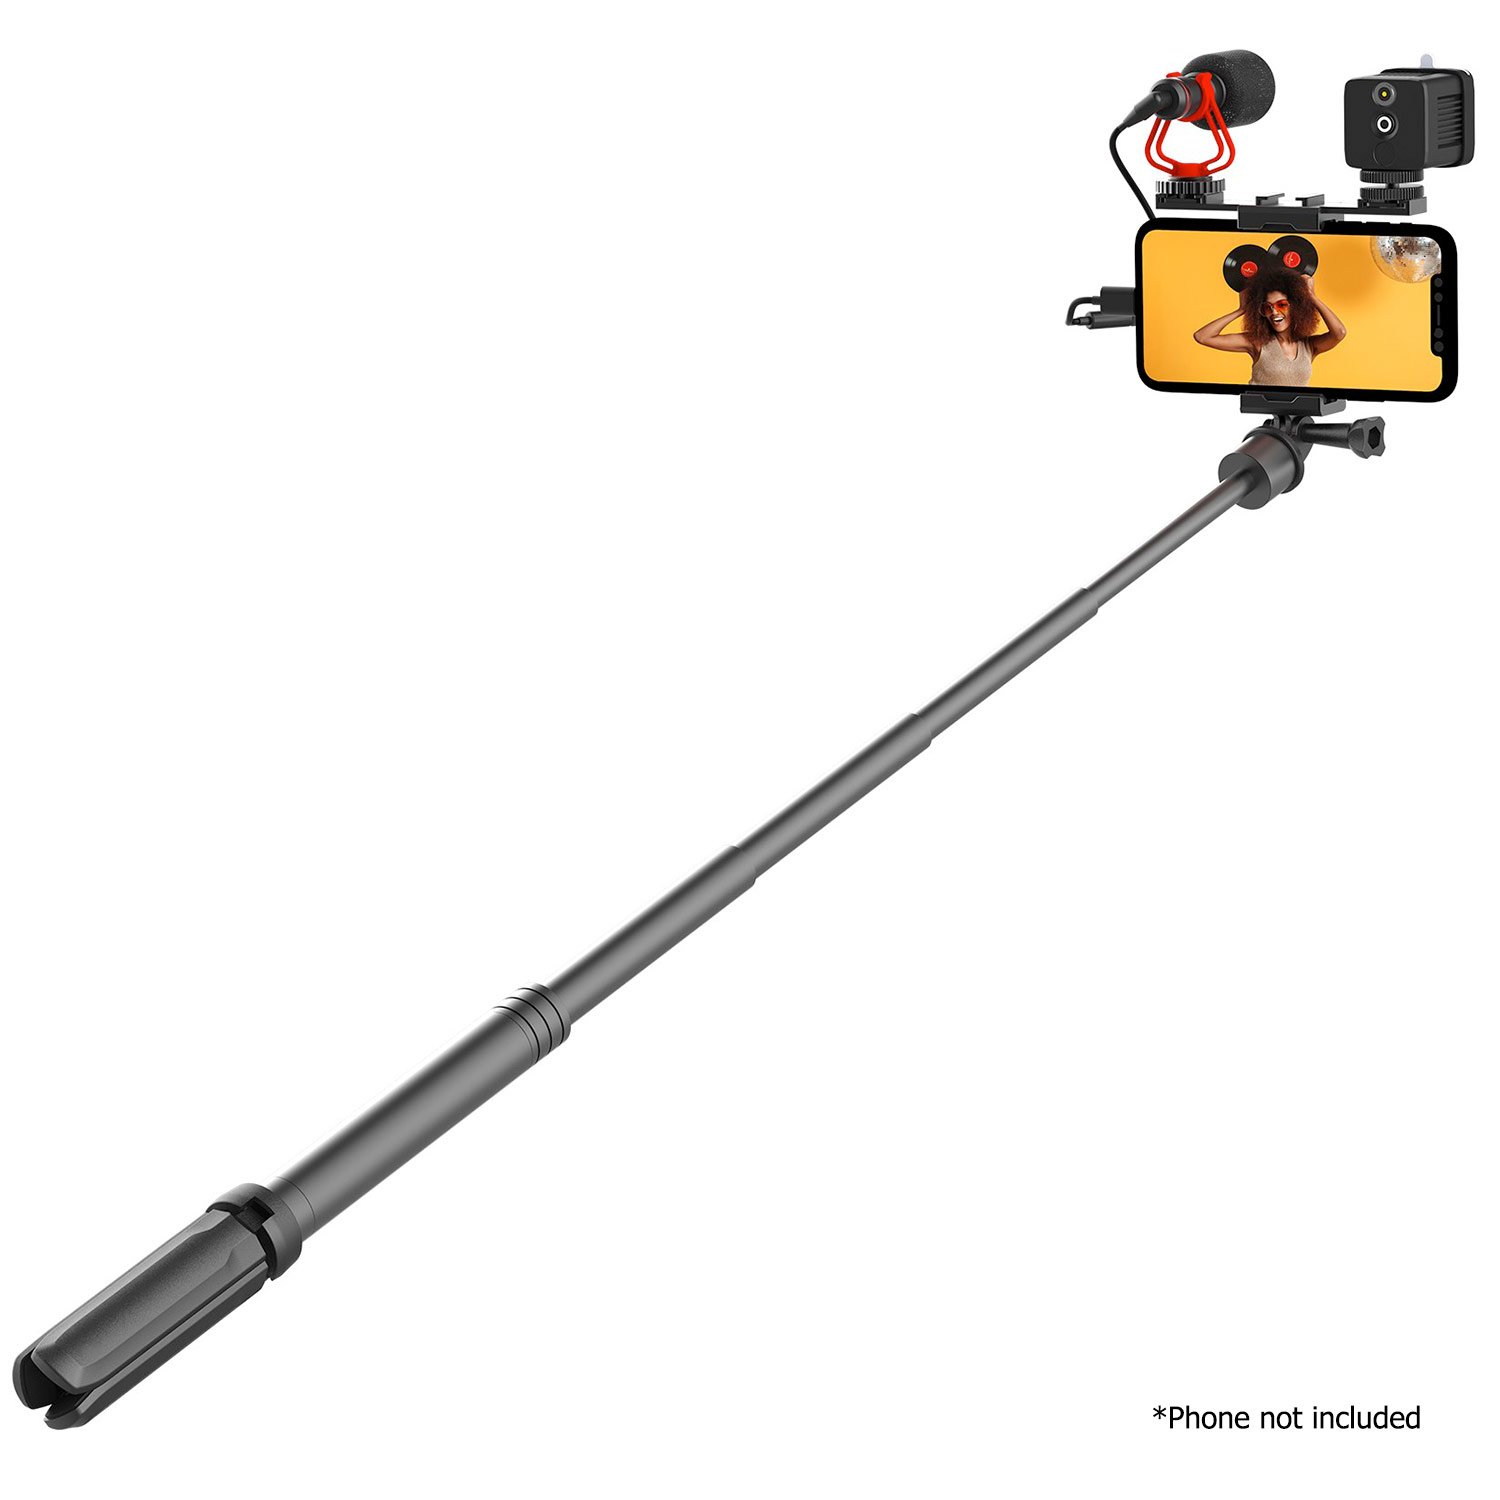 Mirfak Mobile Phone Vlogging Kit, Includes Moin L1 Fill Light, Extension Pole, Microphone, Tripod, Phone Holder Mobile Photo & Video Accessories Moza